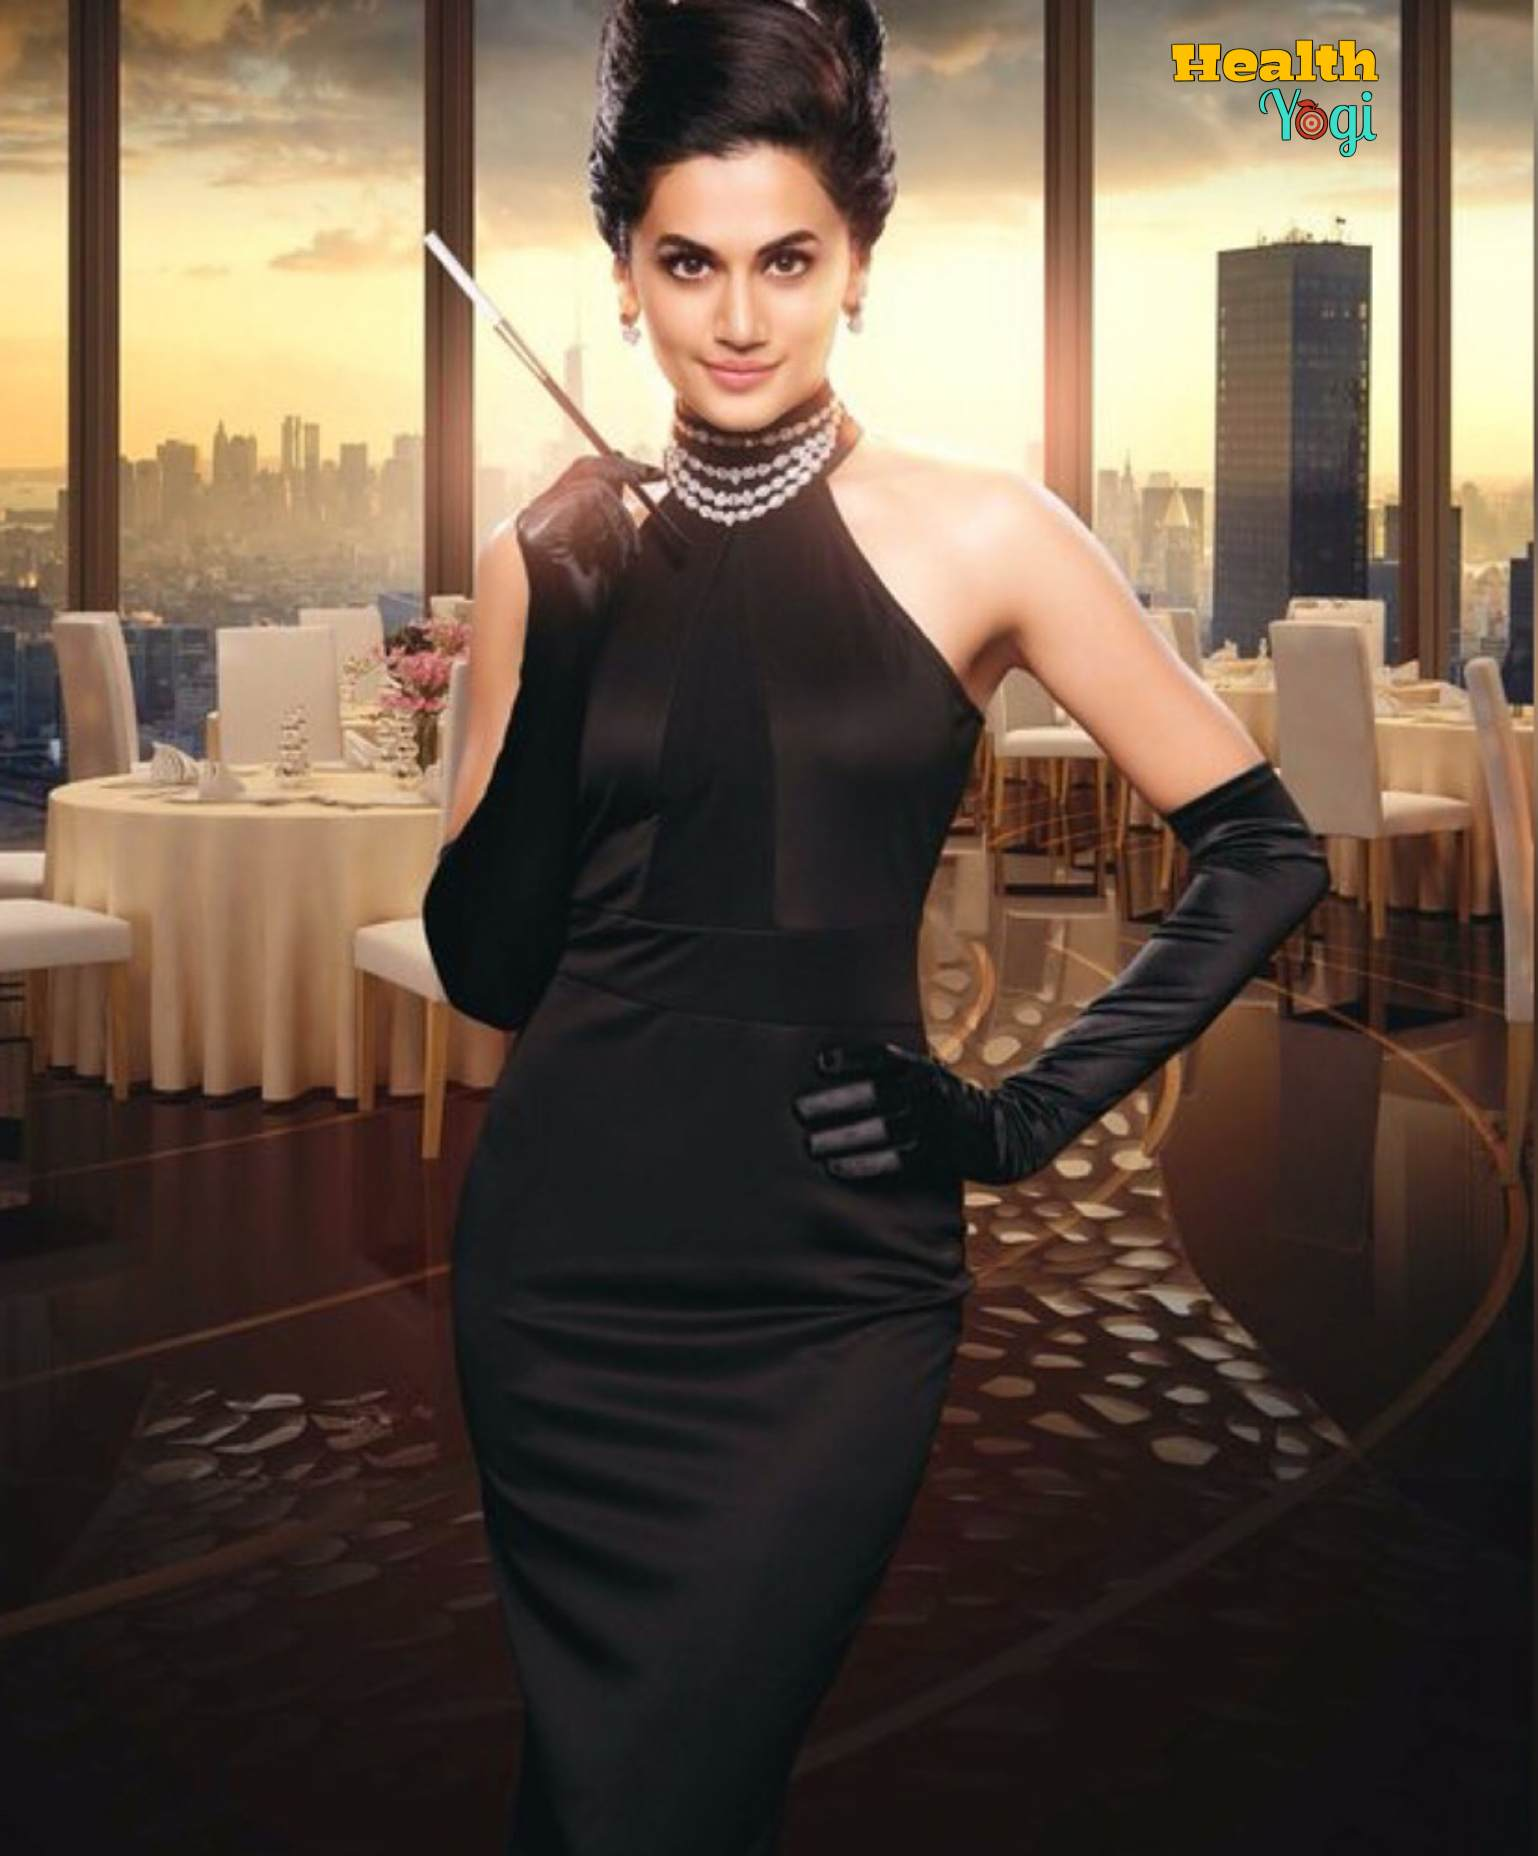 Taapsee Pannu Workout Routine and Diet Plan